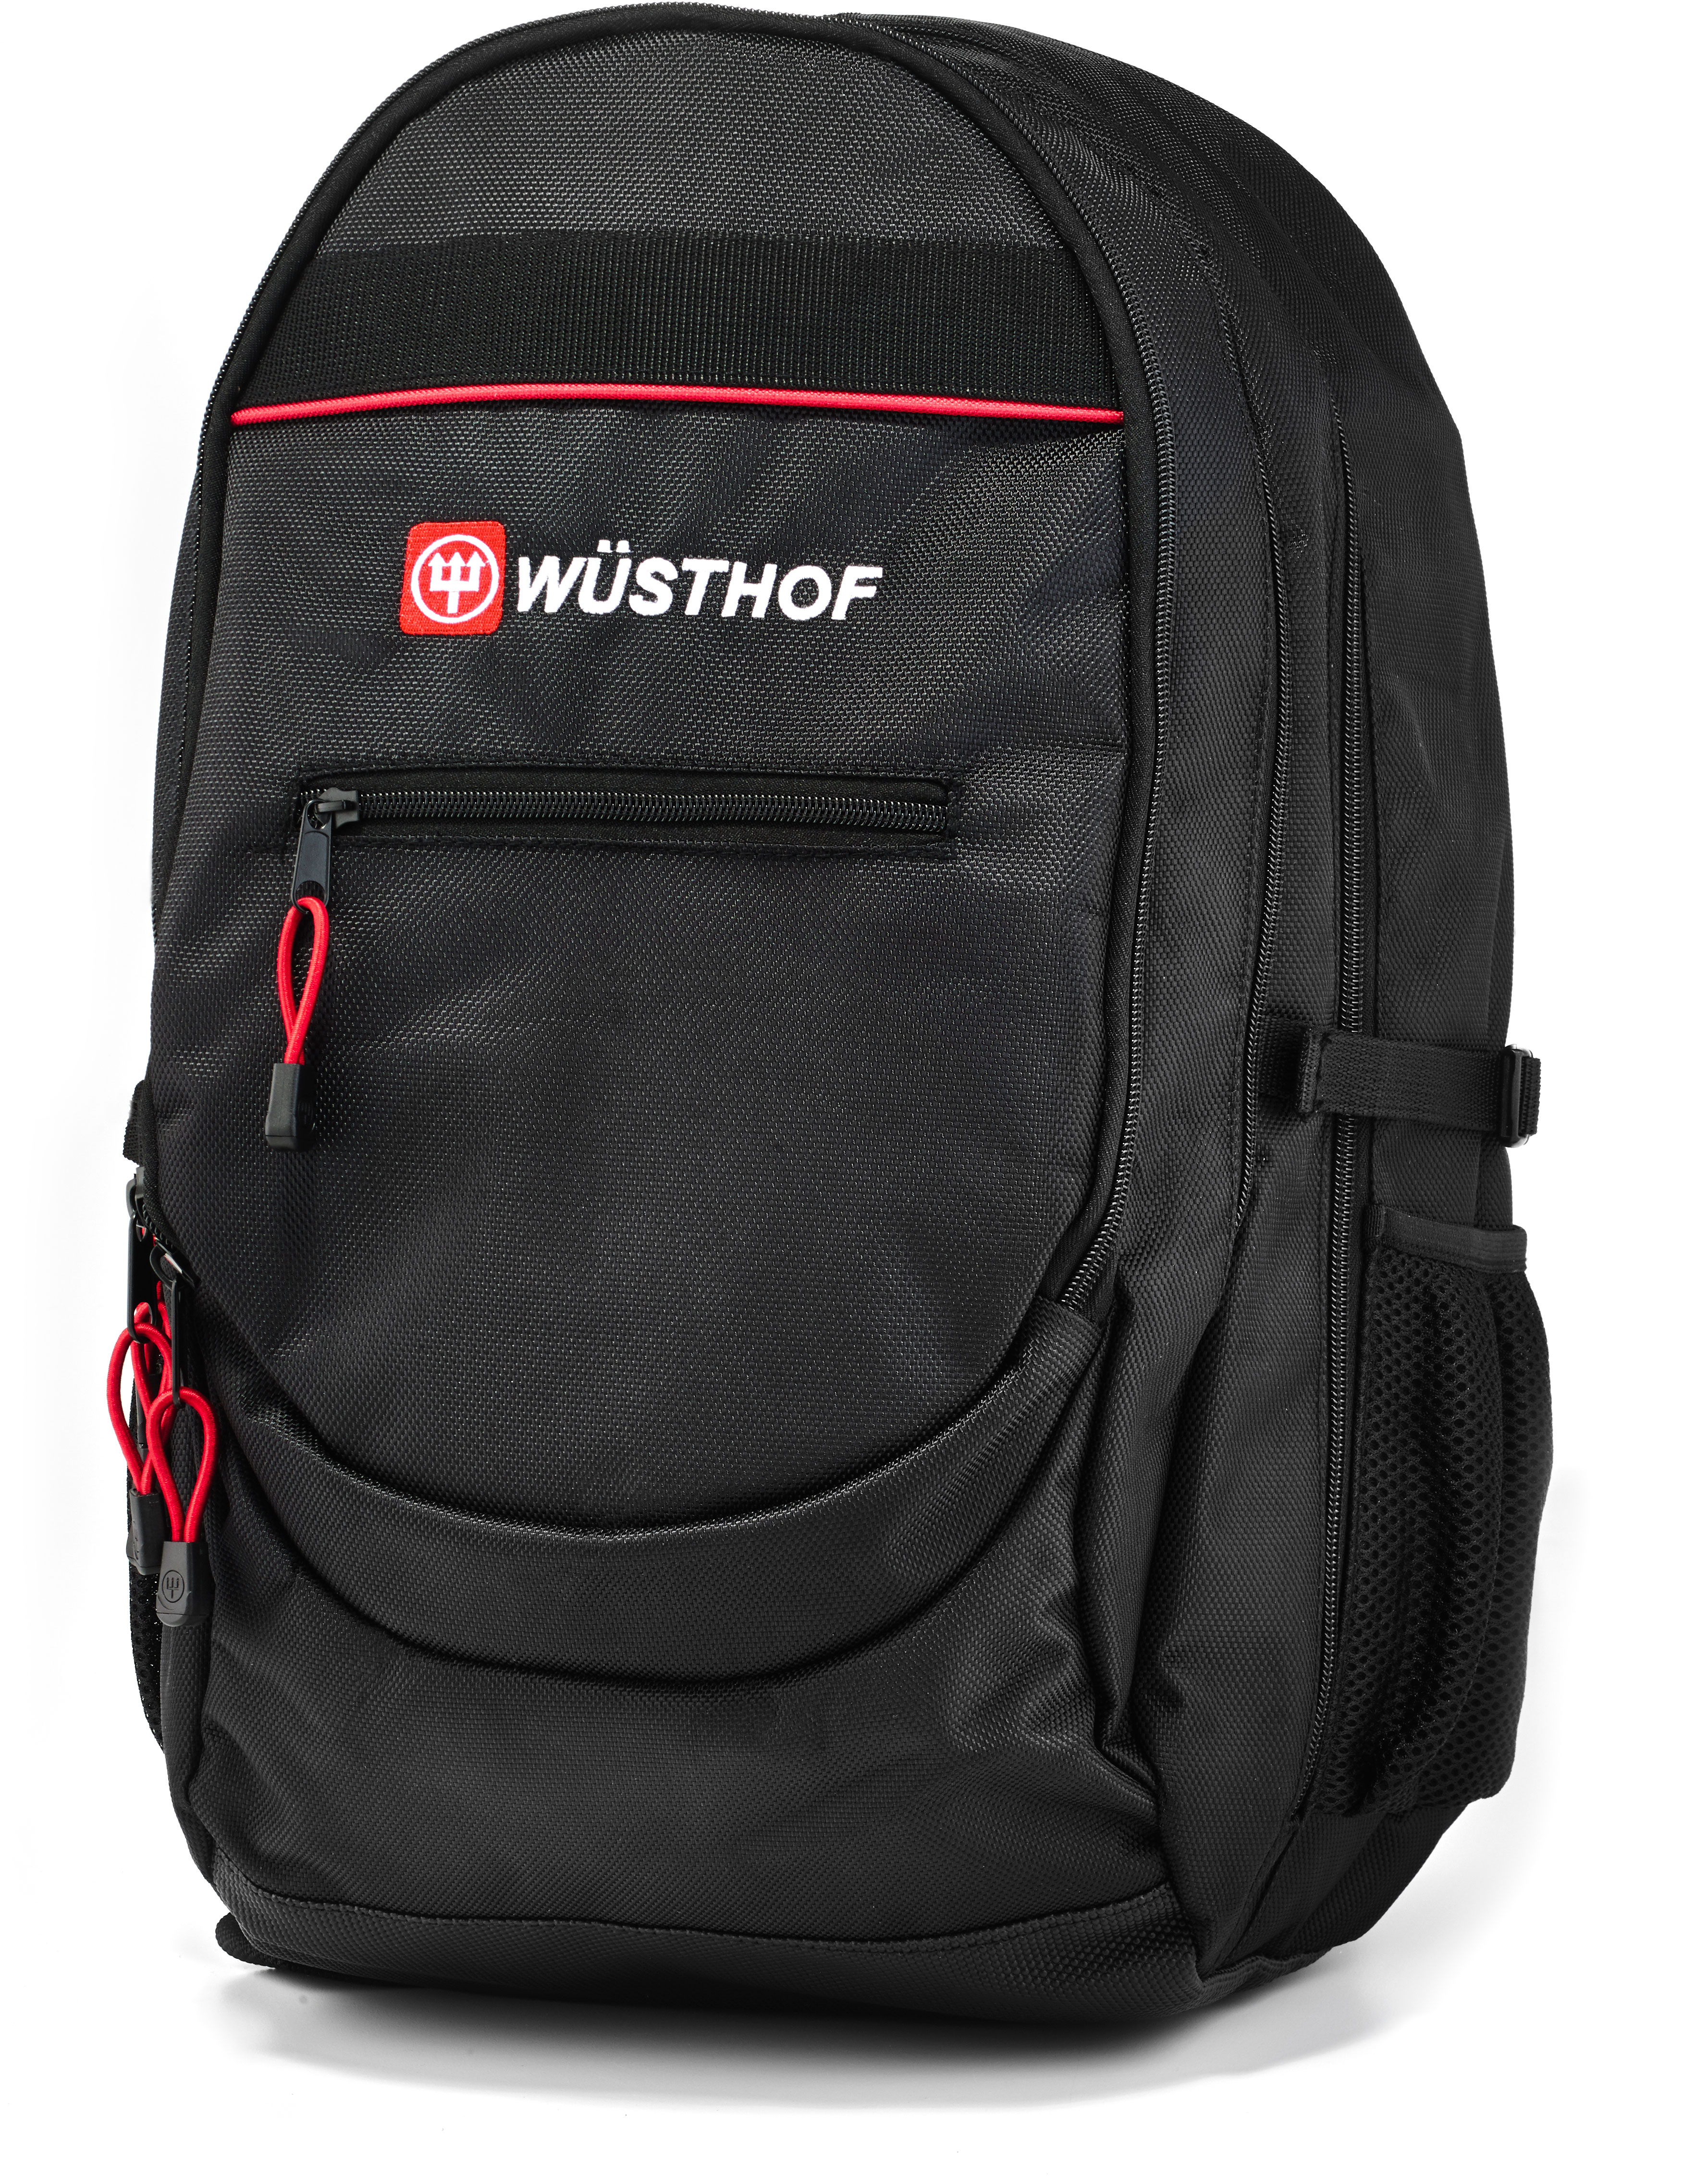 Wusthof Chef S Backpack With 10 Knife Case Insert